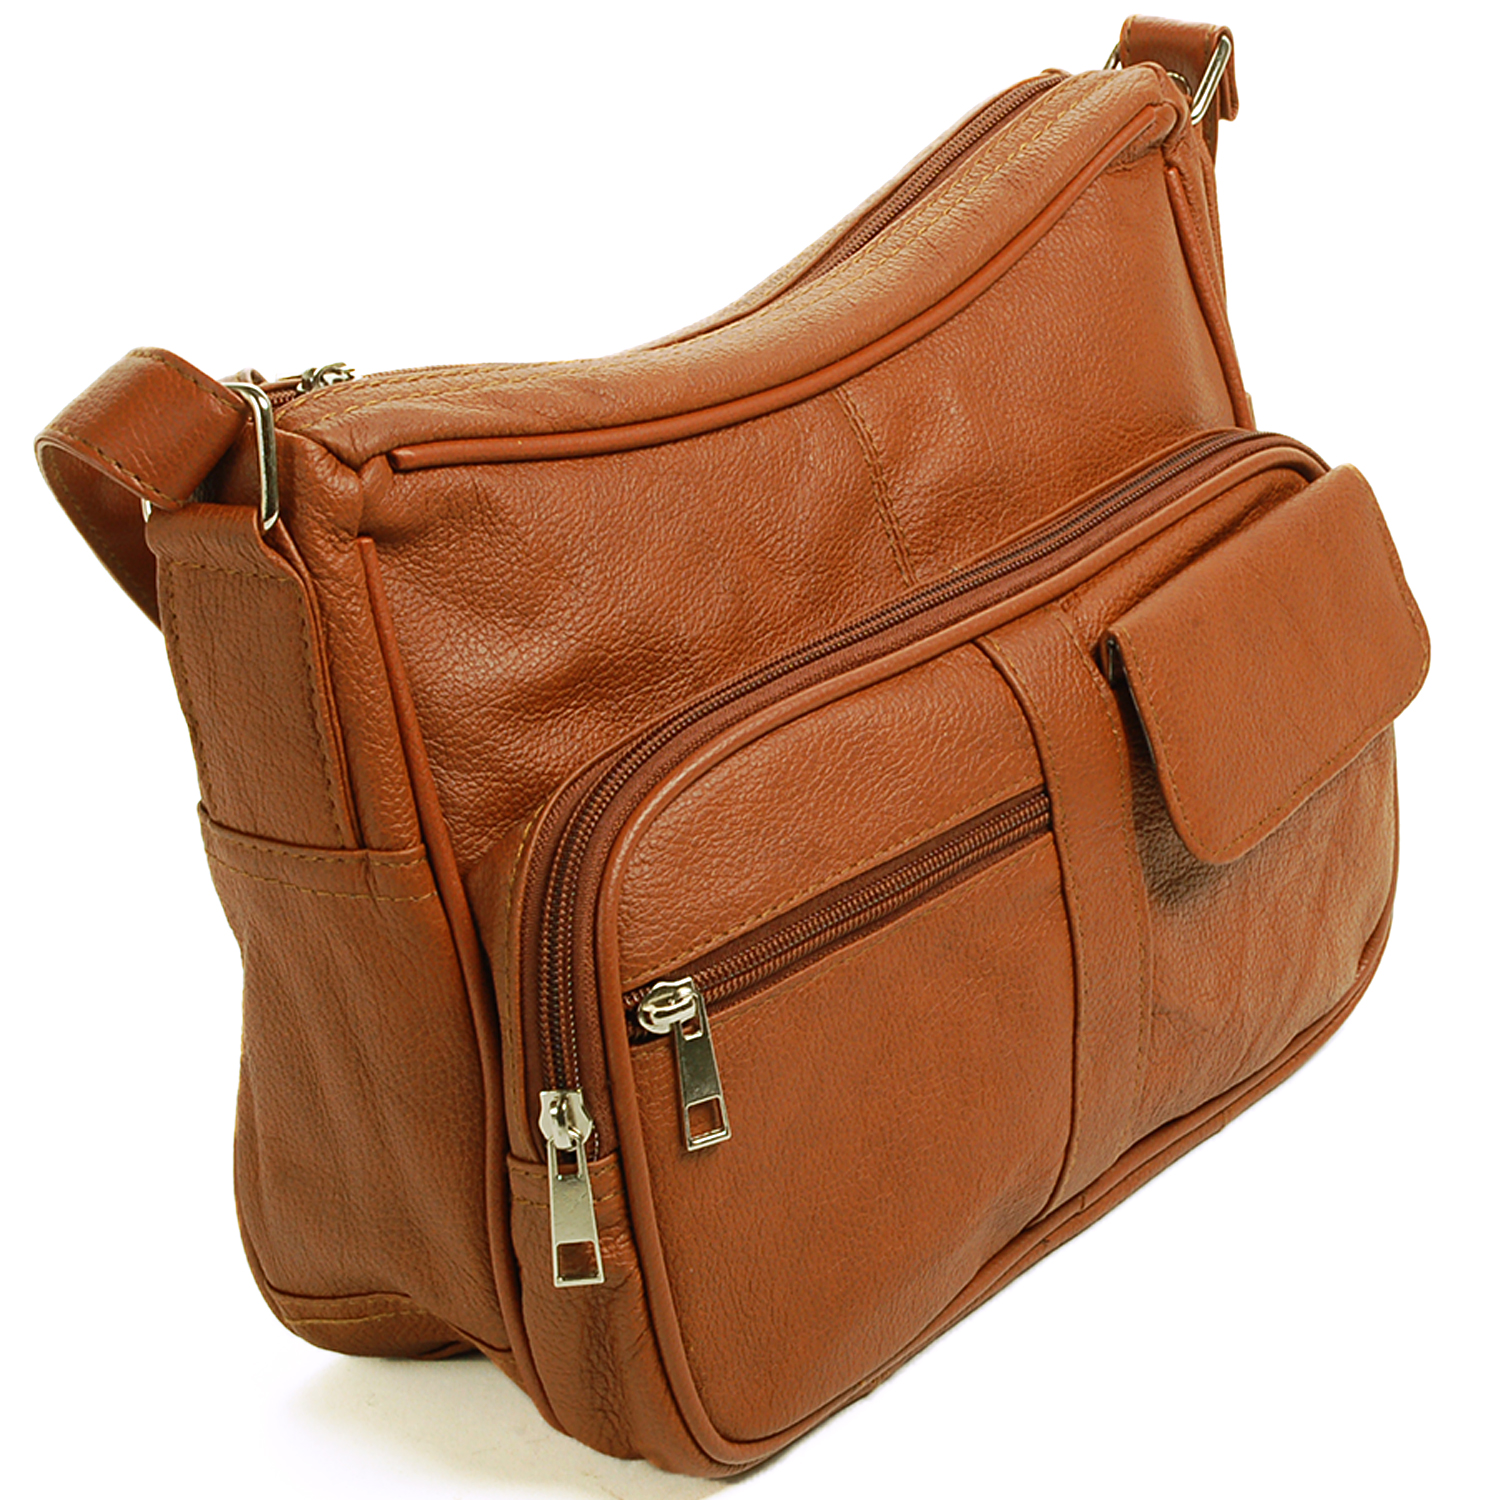 8cde021c26 SBR Designs - Women s Leather Organizer Purse Shoulder Bag Multiple Pockets Cross  Body Handbag - Walmart.com